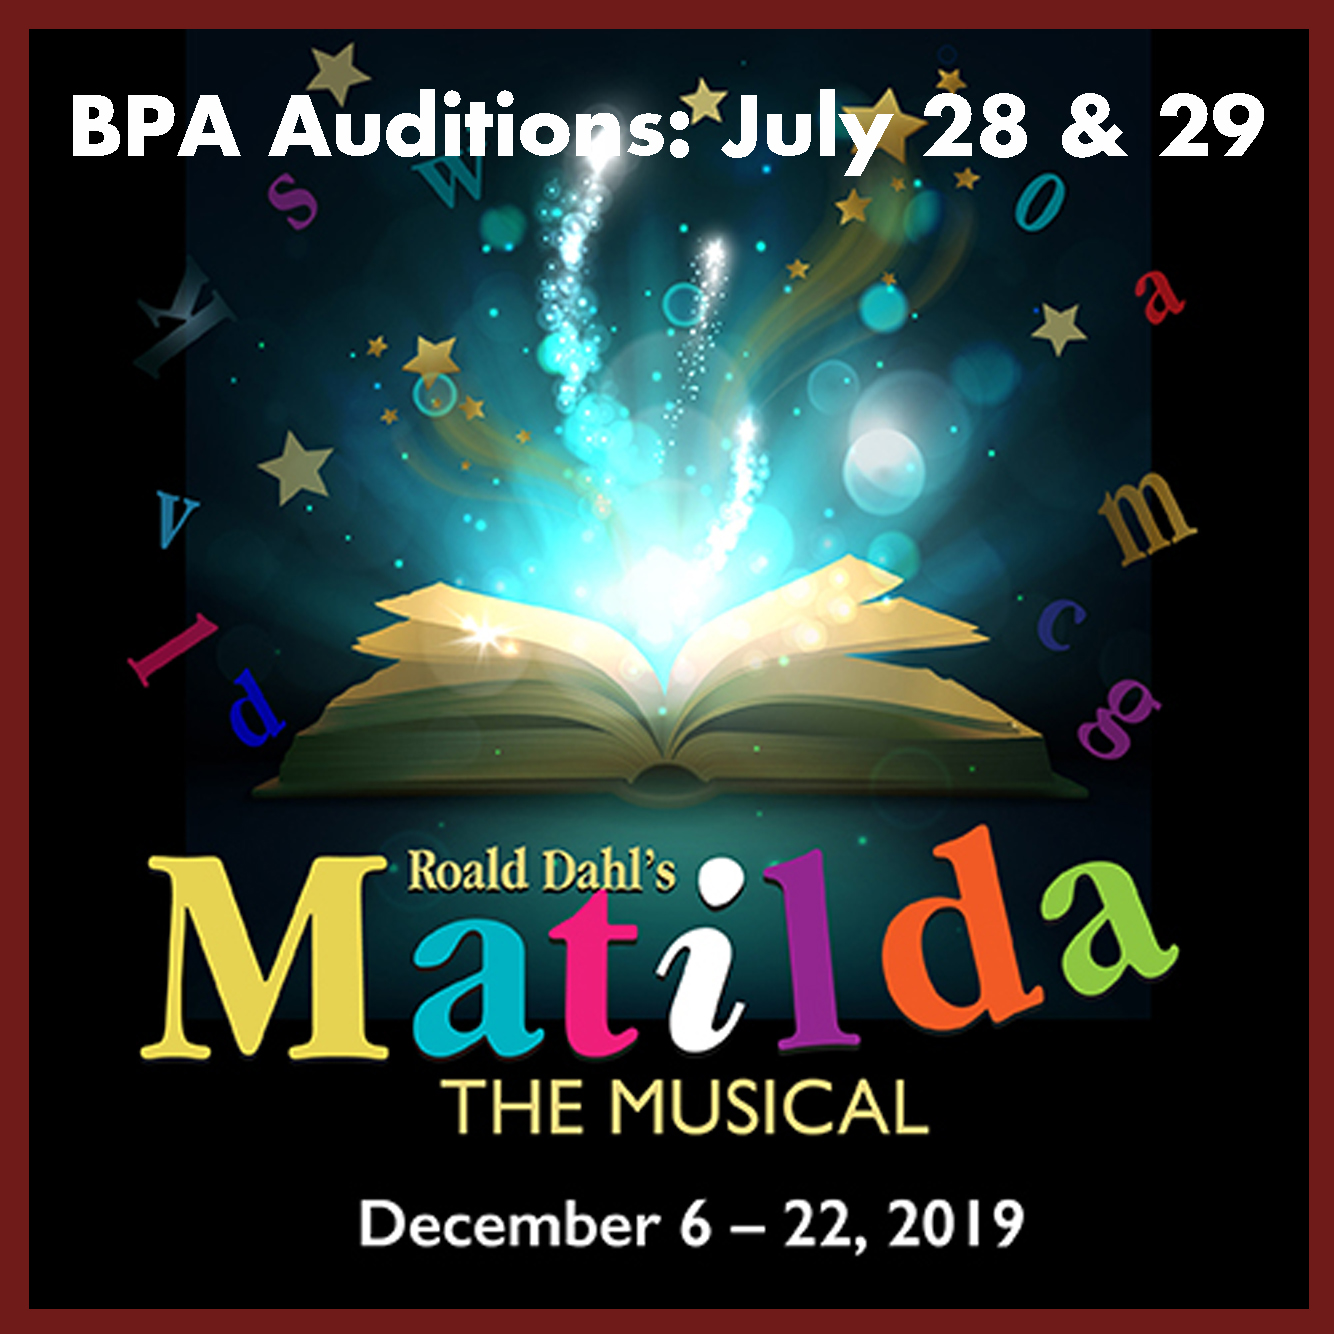 BPA Auditions for Roald Dahl's MATILDA THE MUSICAL are July 28 & 29